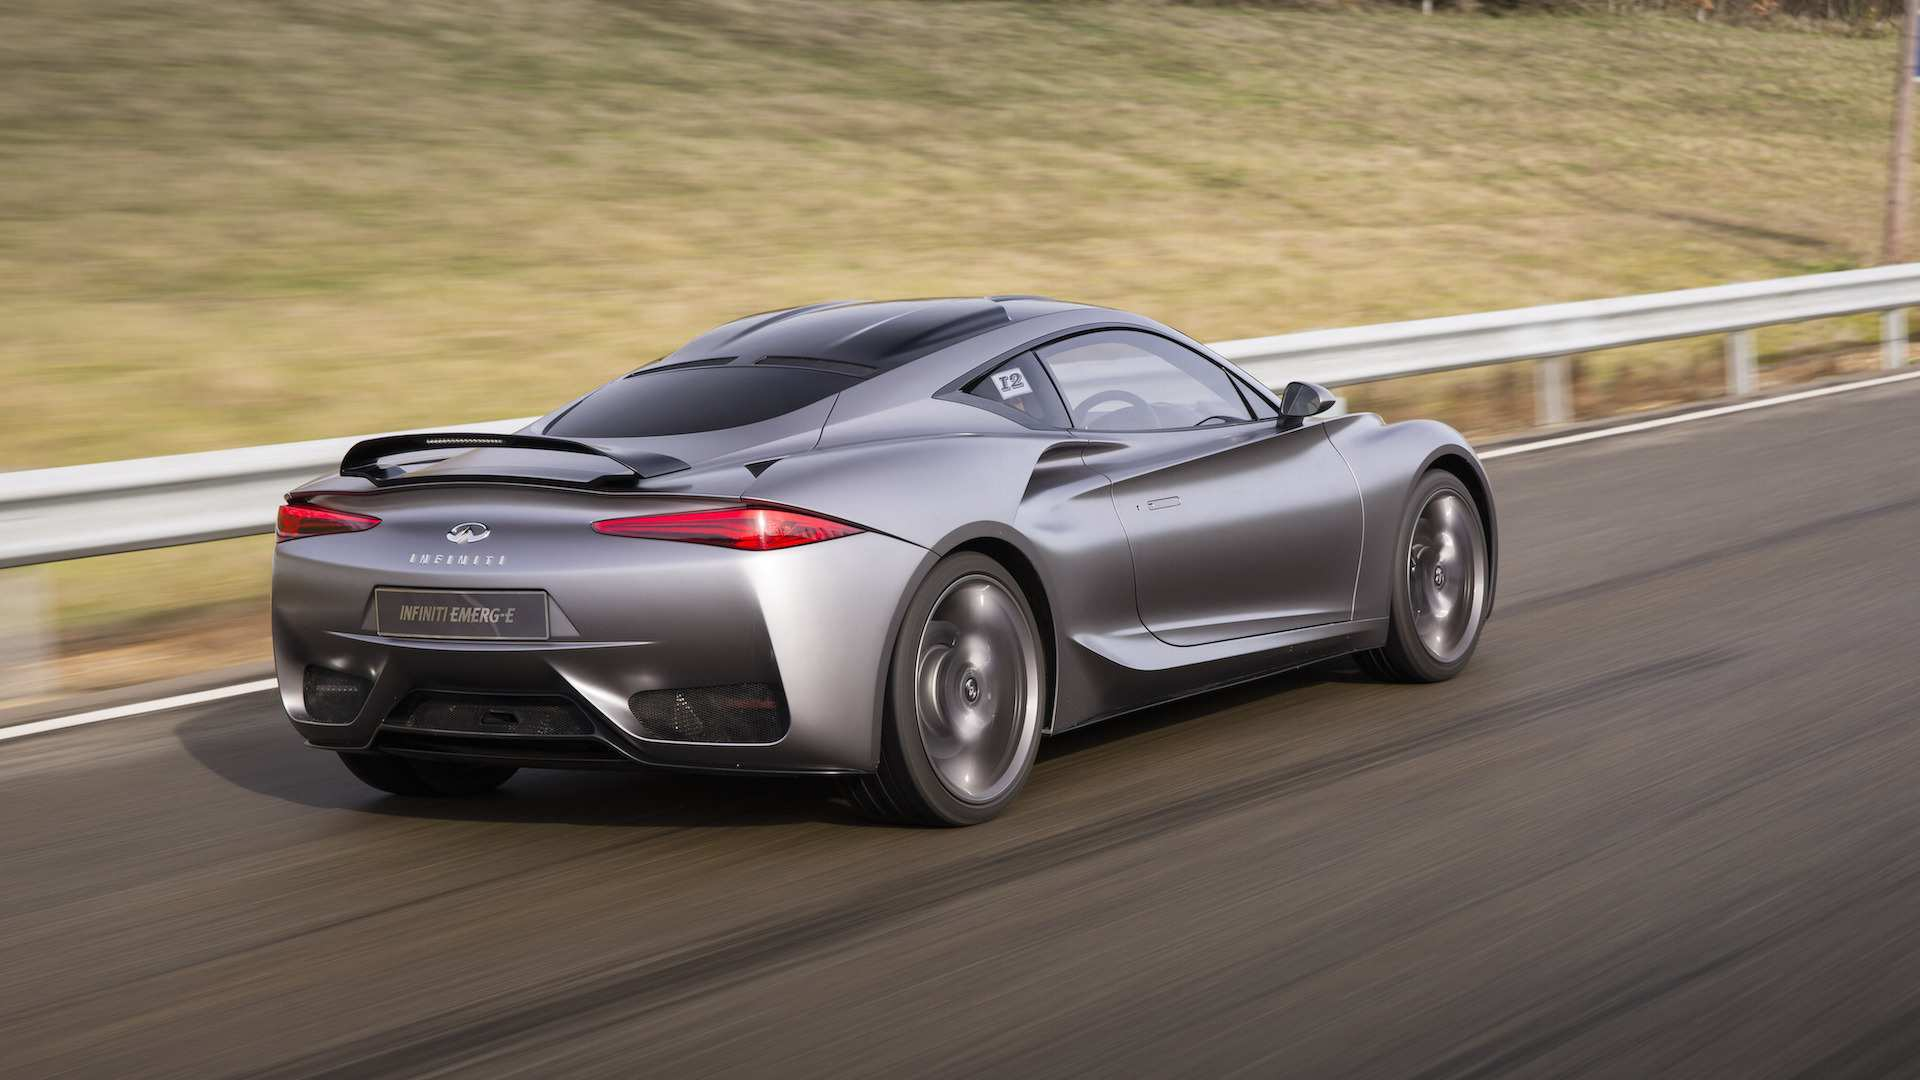 15 All New 2020 Infiniti Cars Performance by 2020 Infiniti Cars